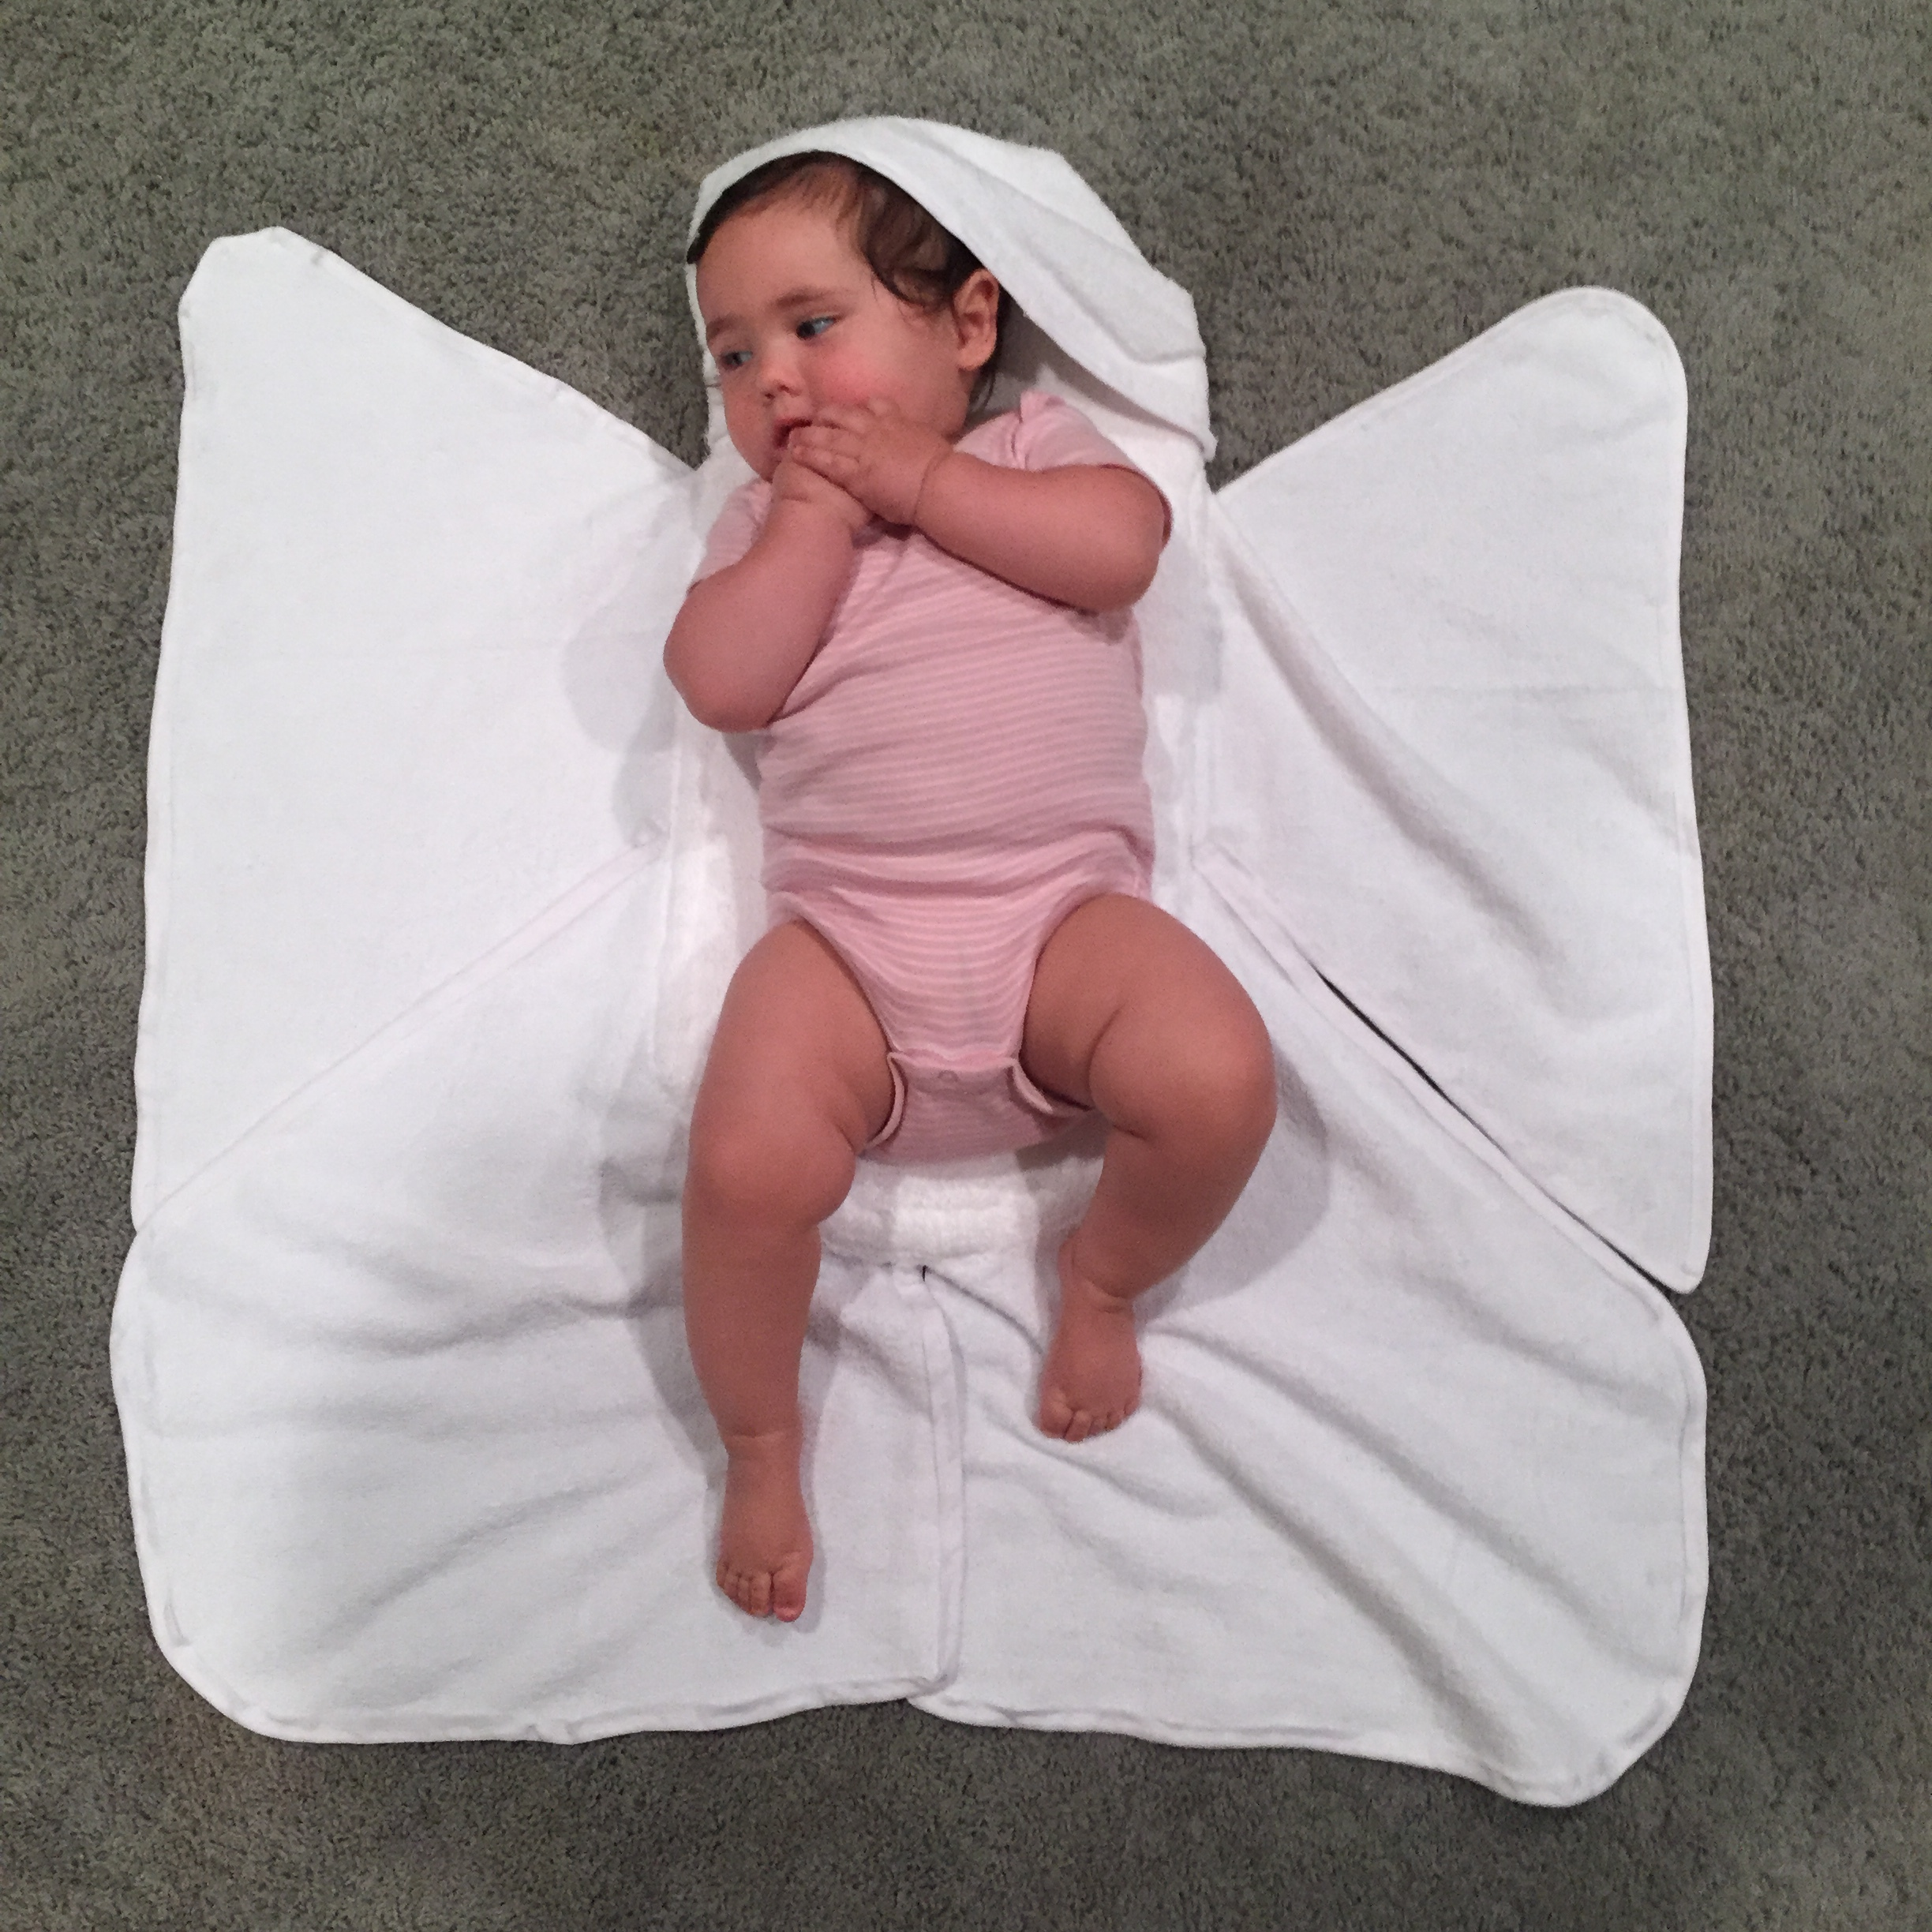 Marlo modeling the second homemade Snow Angel prototype I created. This version didn't have an adjustable hood. That feature was designed to make it appropriate for younger, smaller babies. Marlo was just under 9 months old when this was taken.